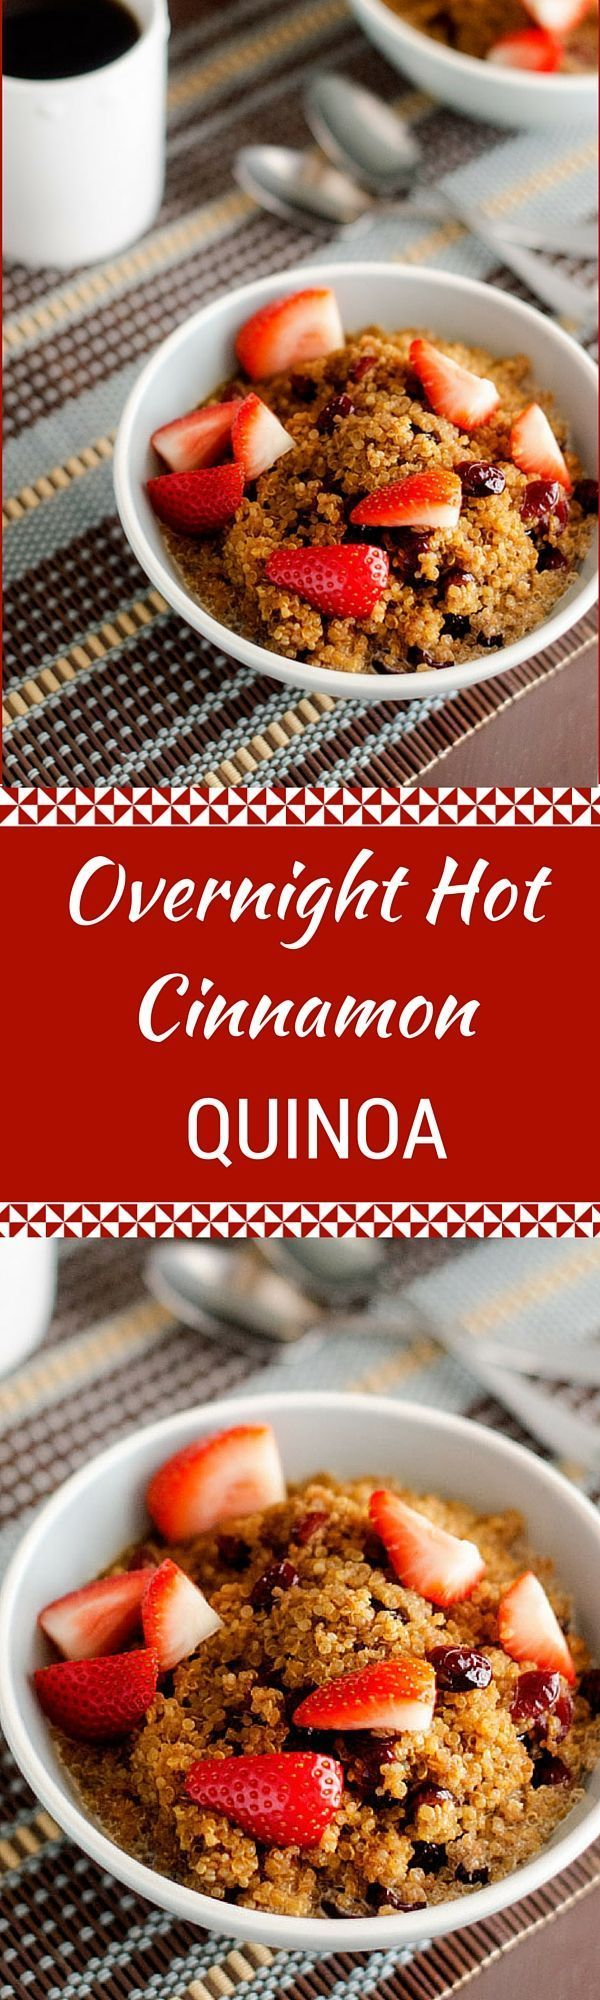 Overnight Hot Cinnamon Quinoa - This easy to make breakfast recipe is ...